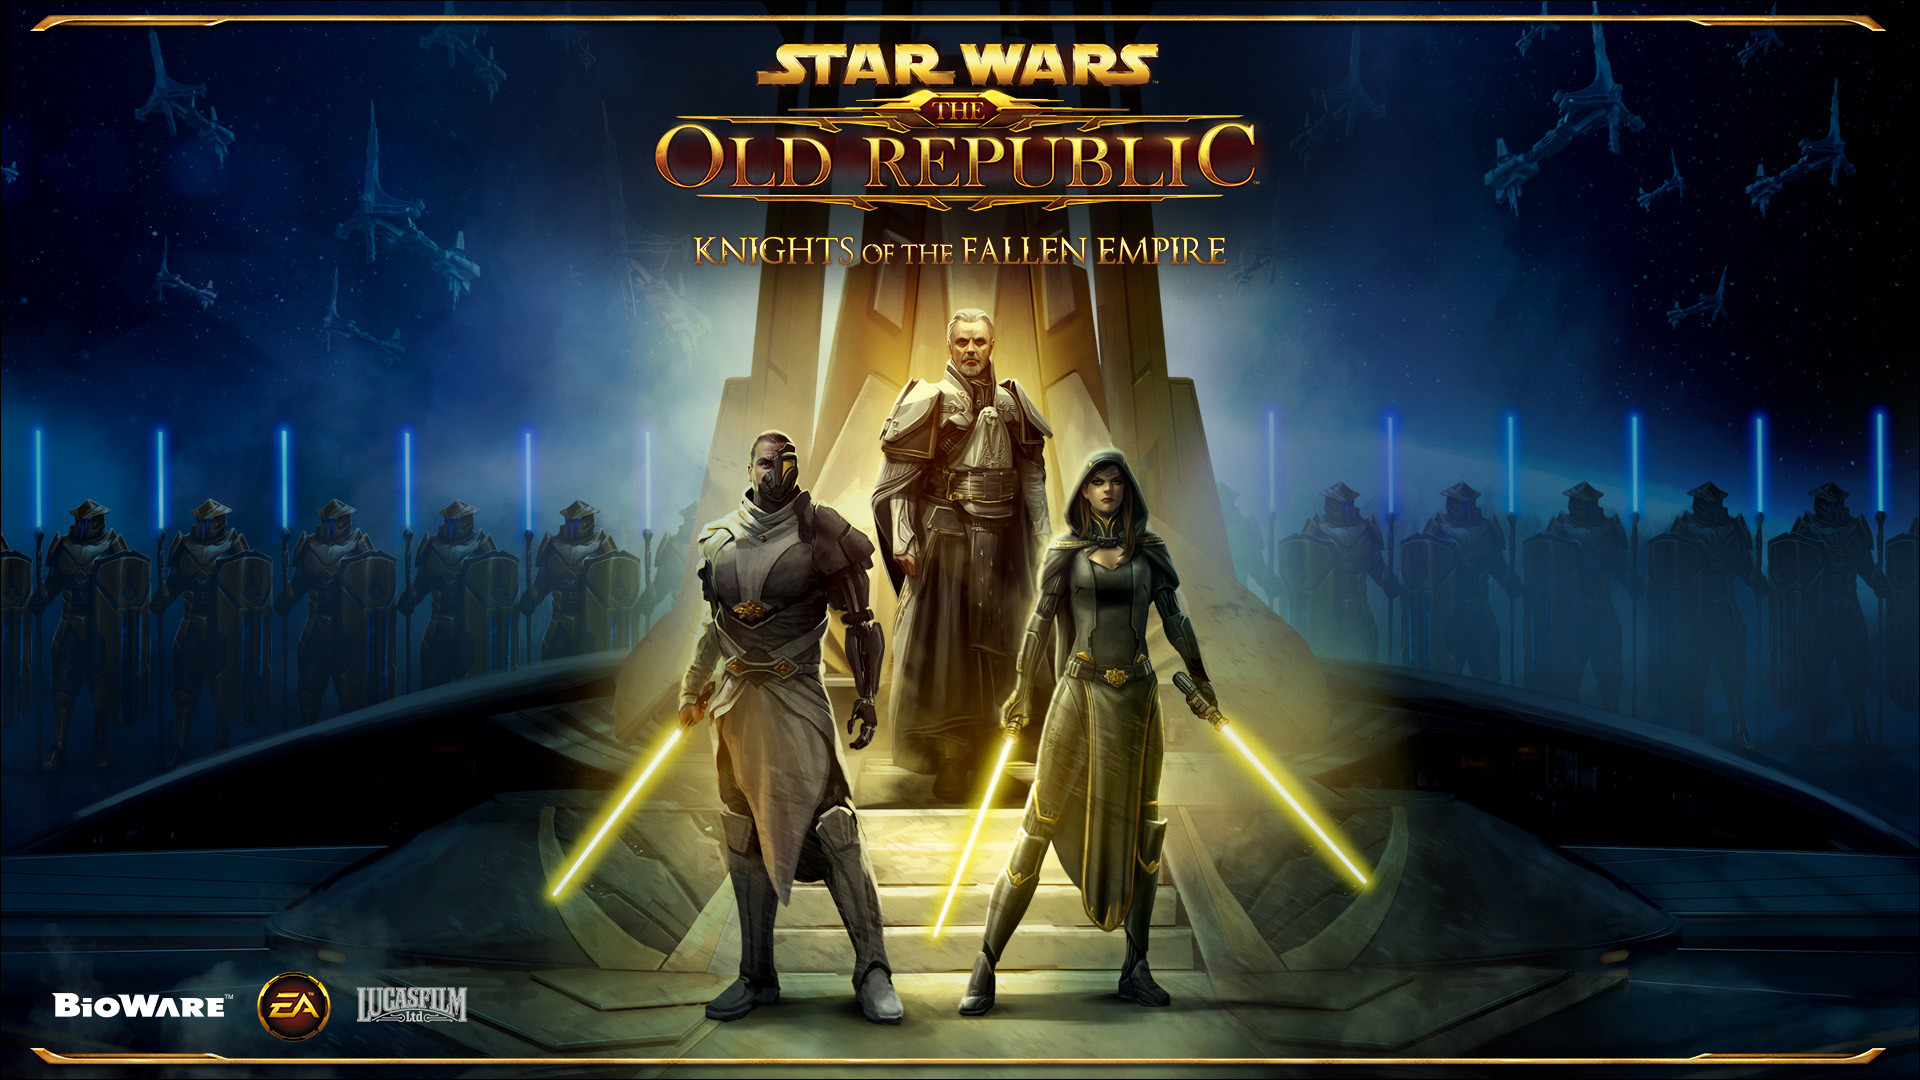 Swtor Wallpapers 1920x1080 80 Images